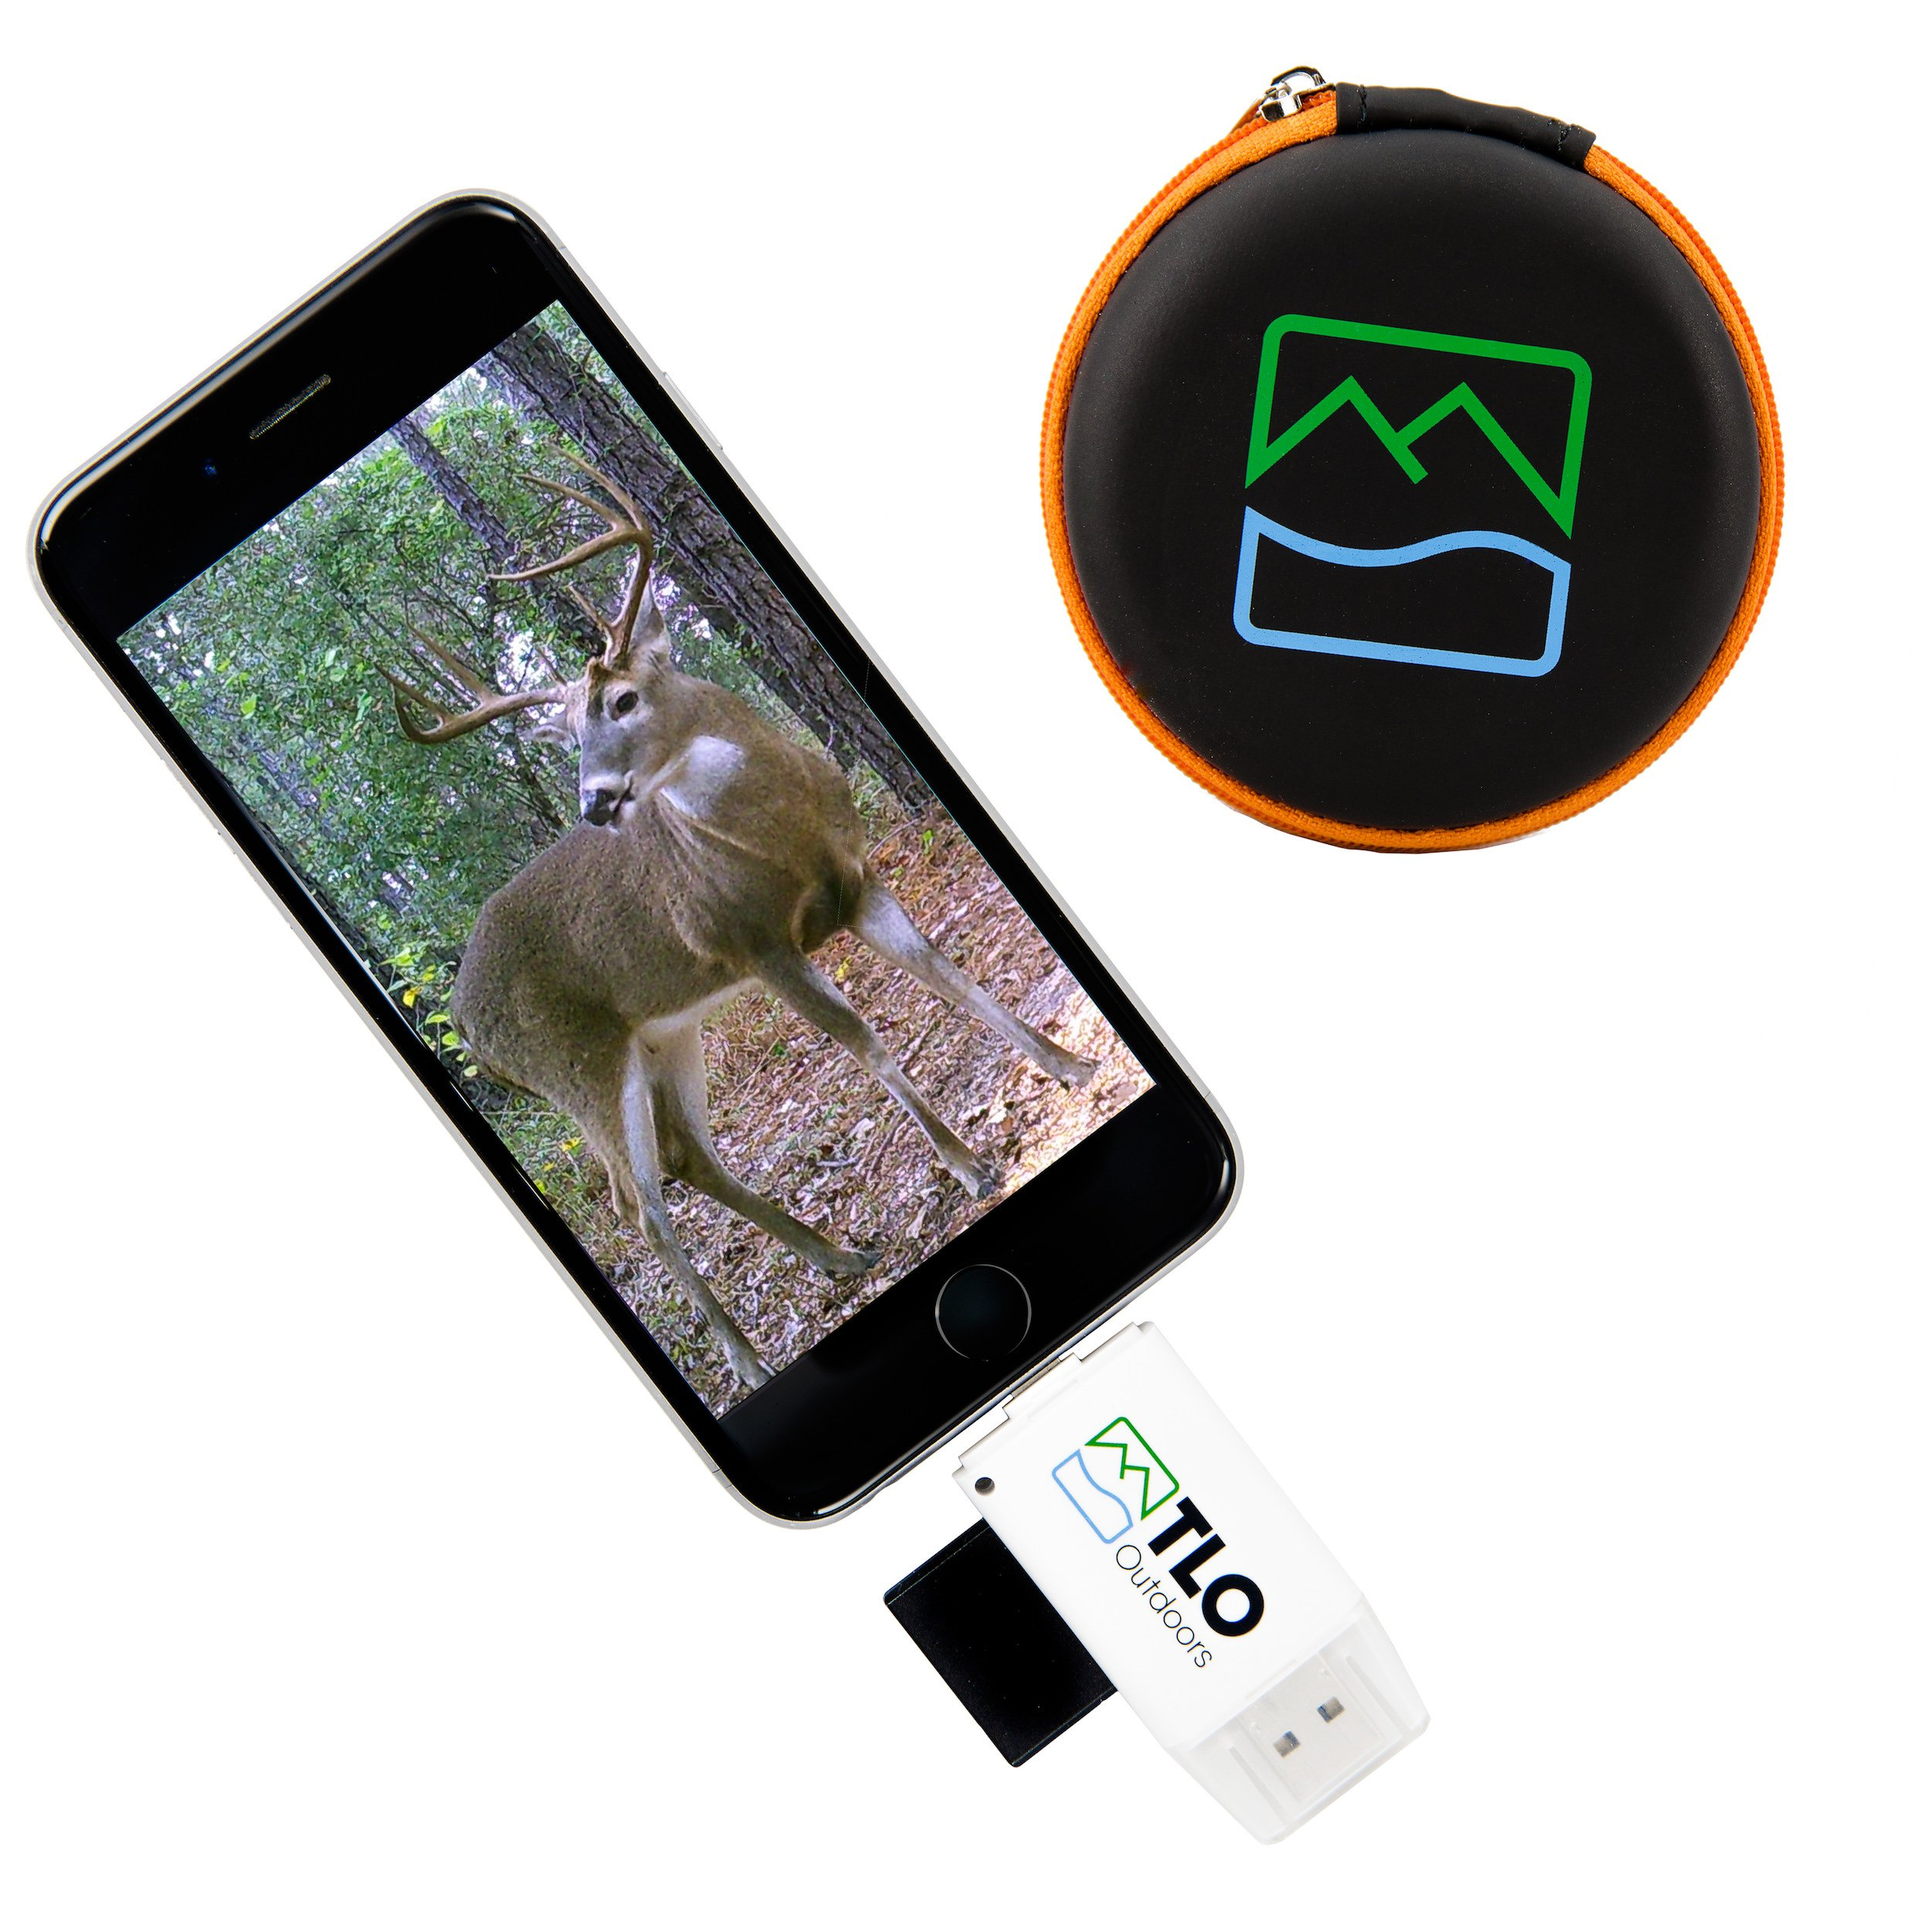 TLO Outdoors TrophyTracker Trail Camera Viewer - for iPhone, Android, iPad - Great for Hunters and Sportsmen, Includes Extender and Protective Carrying Case (SD/MicroSD/USB Card Reader) Improved V2